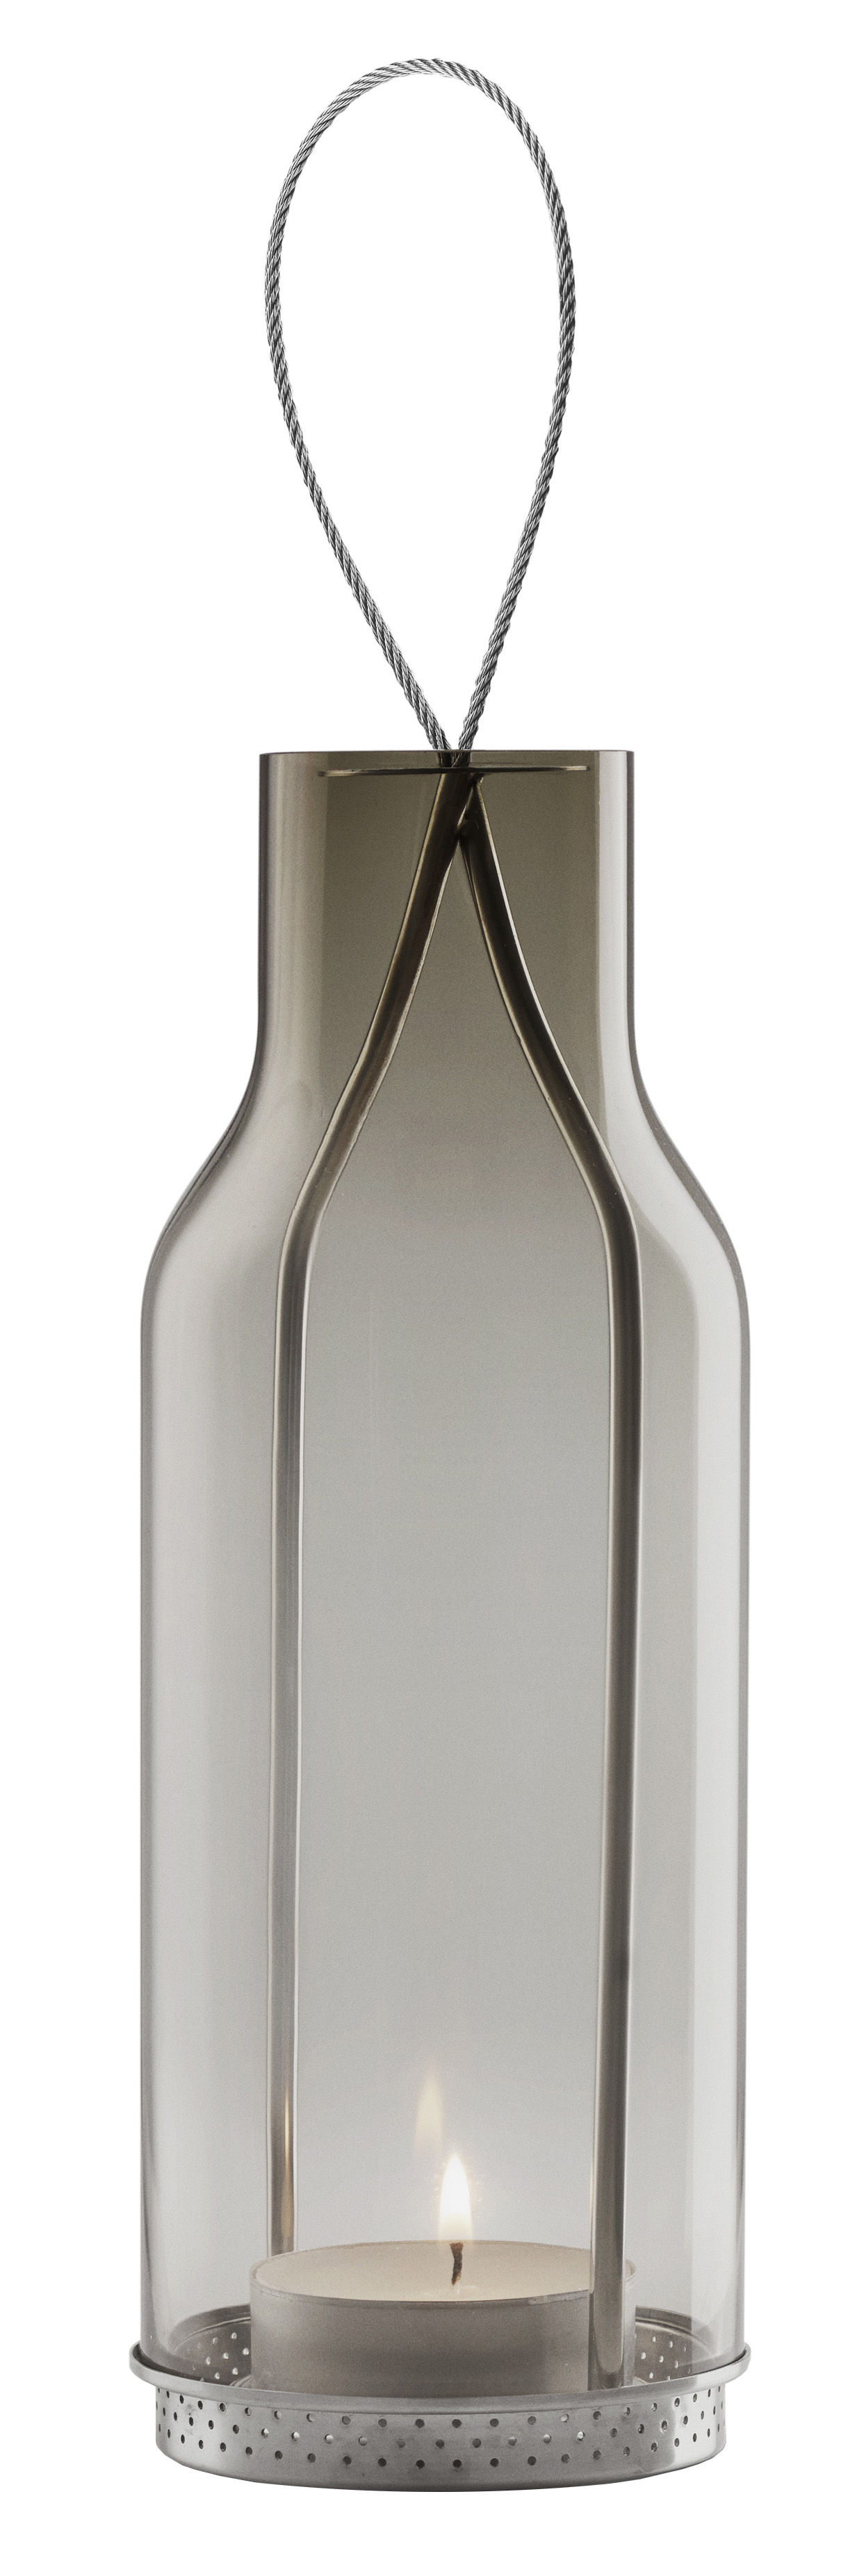 Outdoor - Ornaments & Accessories - Lantern by Eva Solo - Somcked Grey - Mouth blown glass, Stainless steel